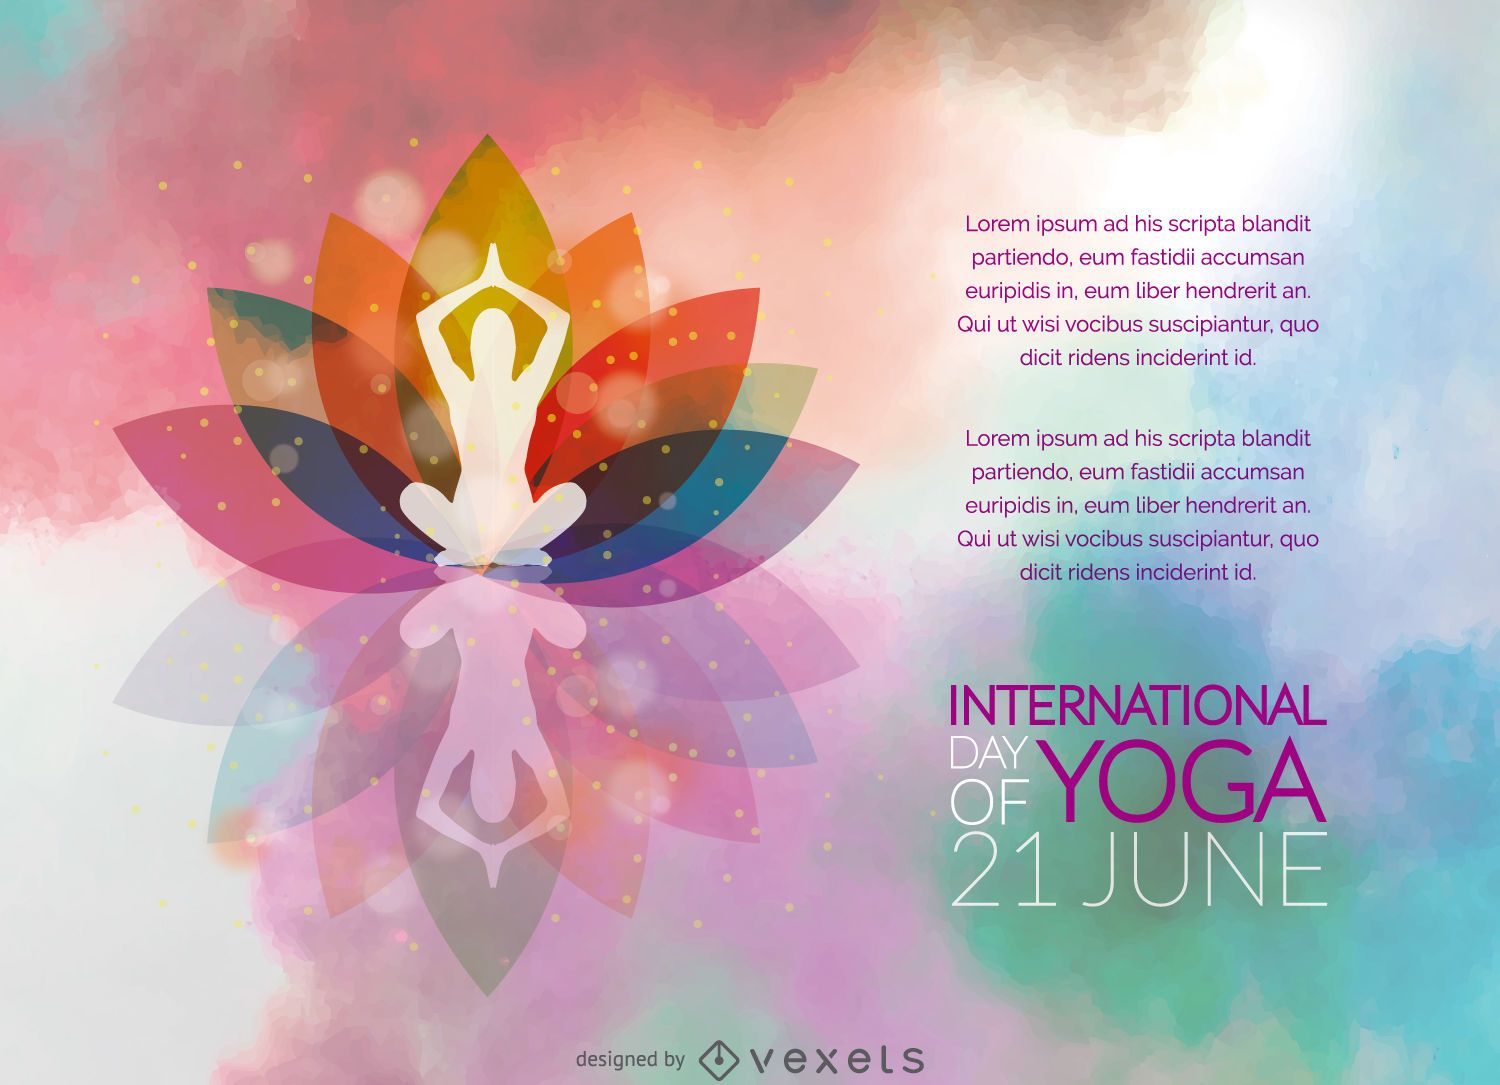 Poster design yoga - International Day Of Yoga Poster Download Large Image 2283x1650px